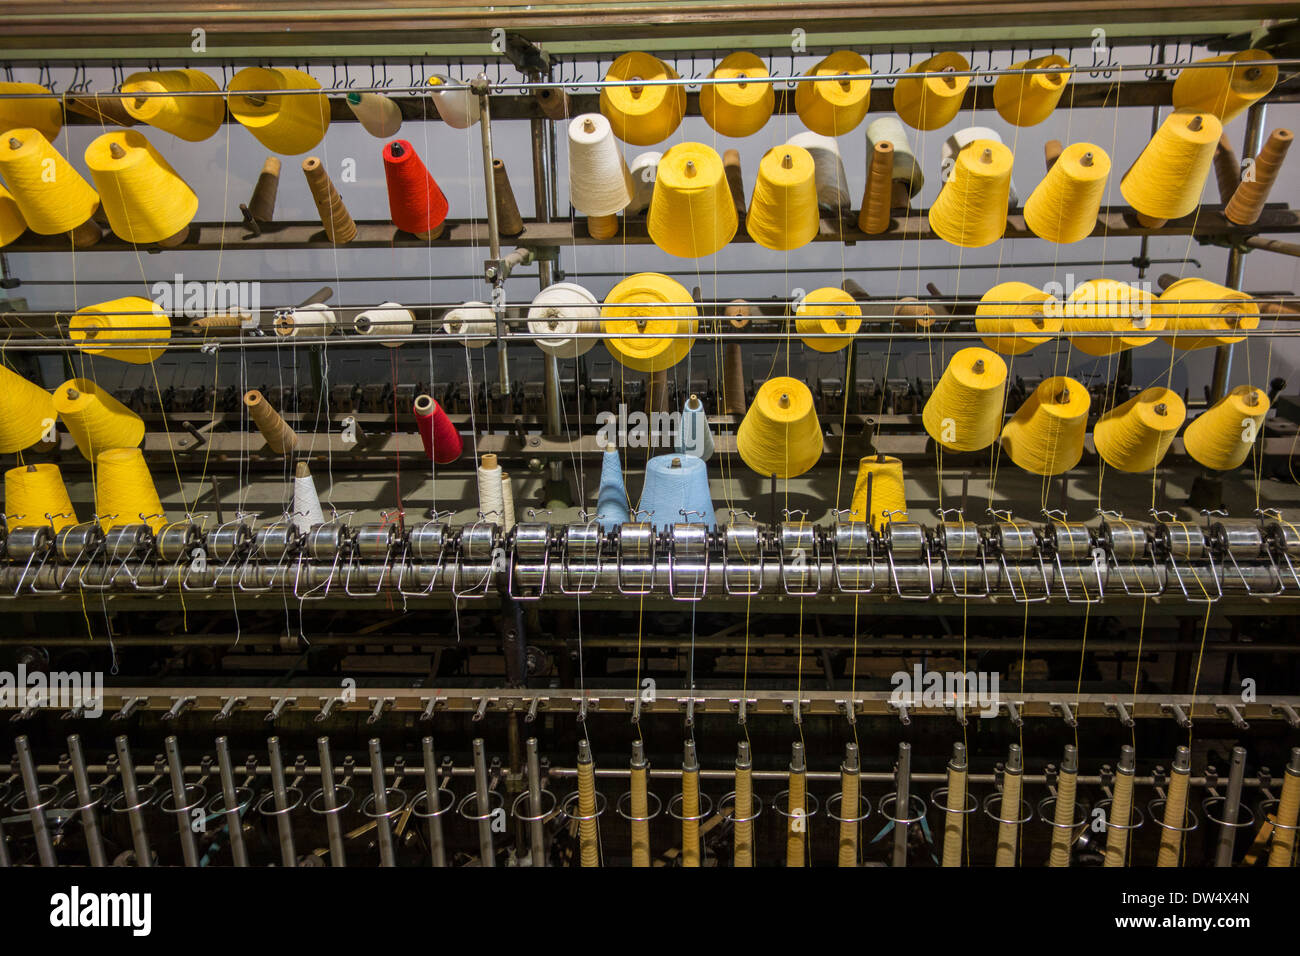 Colorful bobbins with yarn on twisting frame in cotton mill at MIAT, industrial archeology museum, Ghent, Belgium - Stock Image